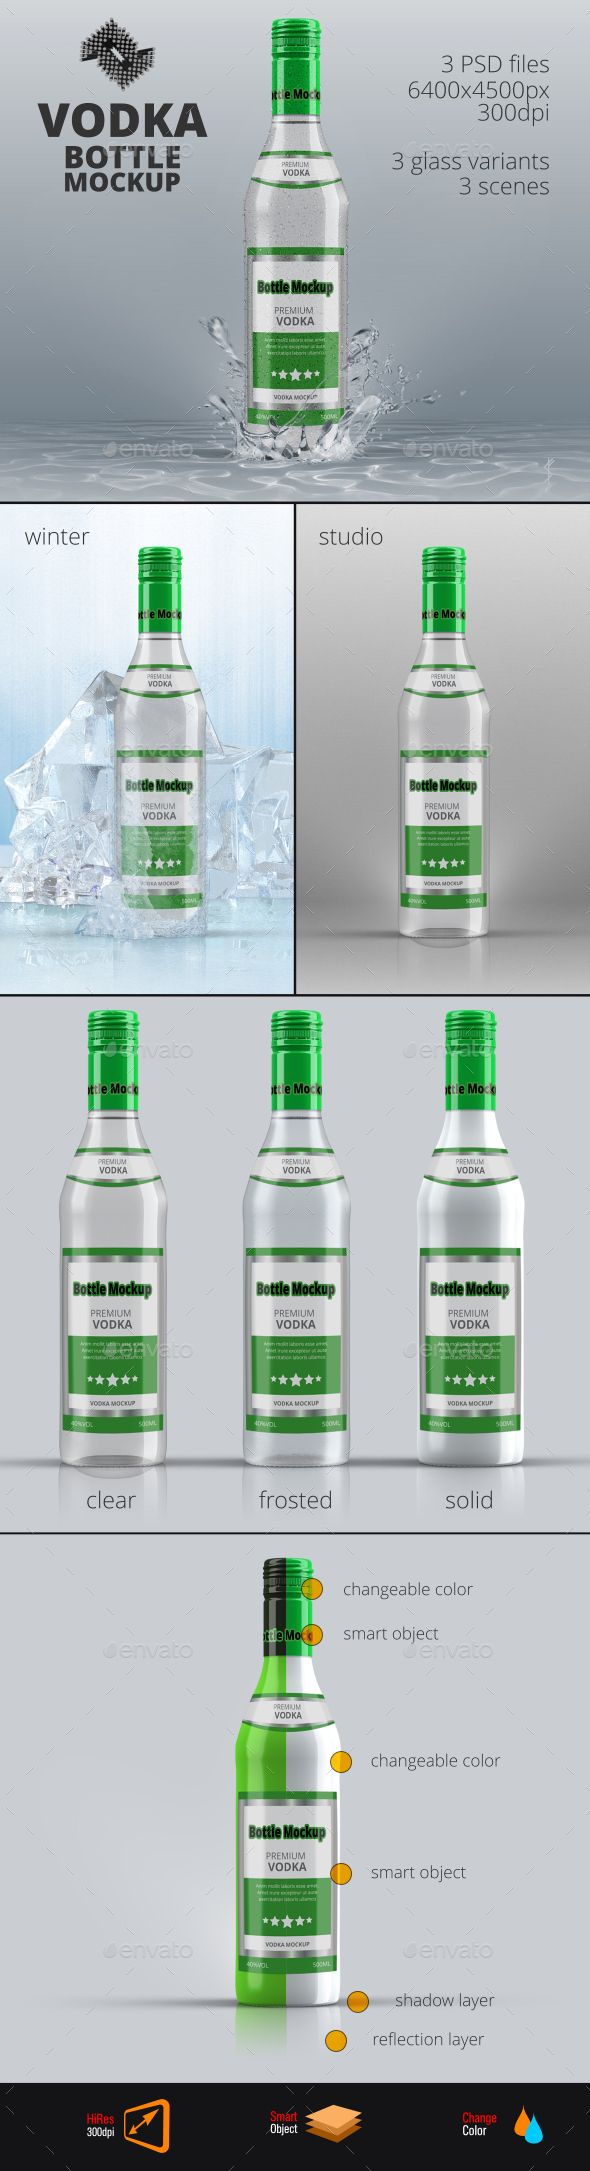 Vodka Bottle Mockup #design Download: http://graphicriver.net/item/vodka-bottle-mockup-vol6/13296427?ref=ksioks